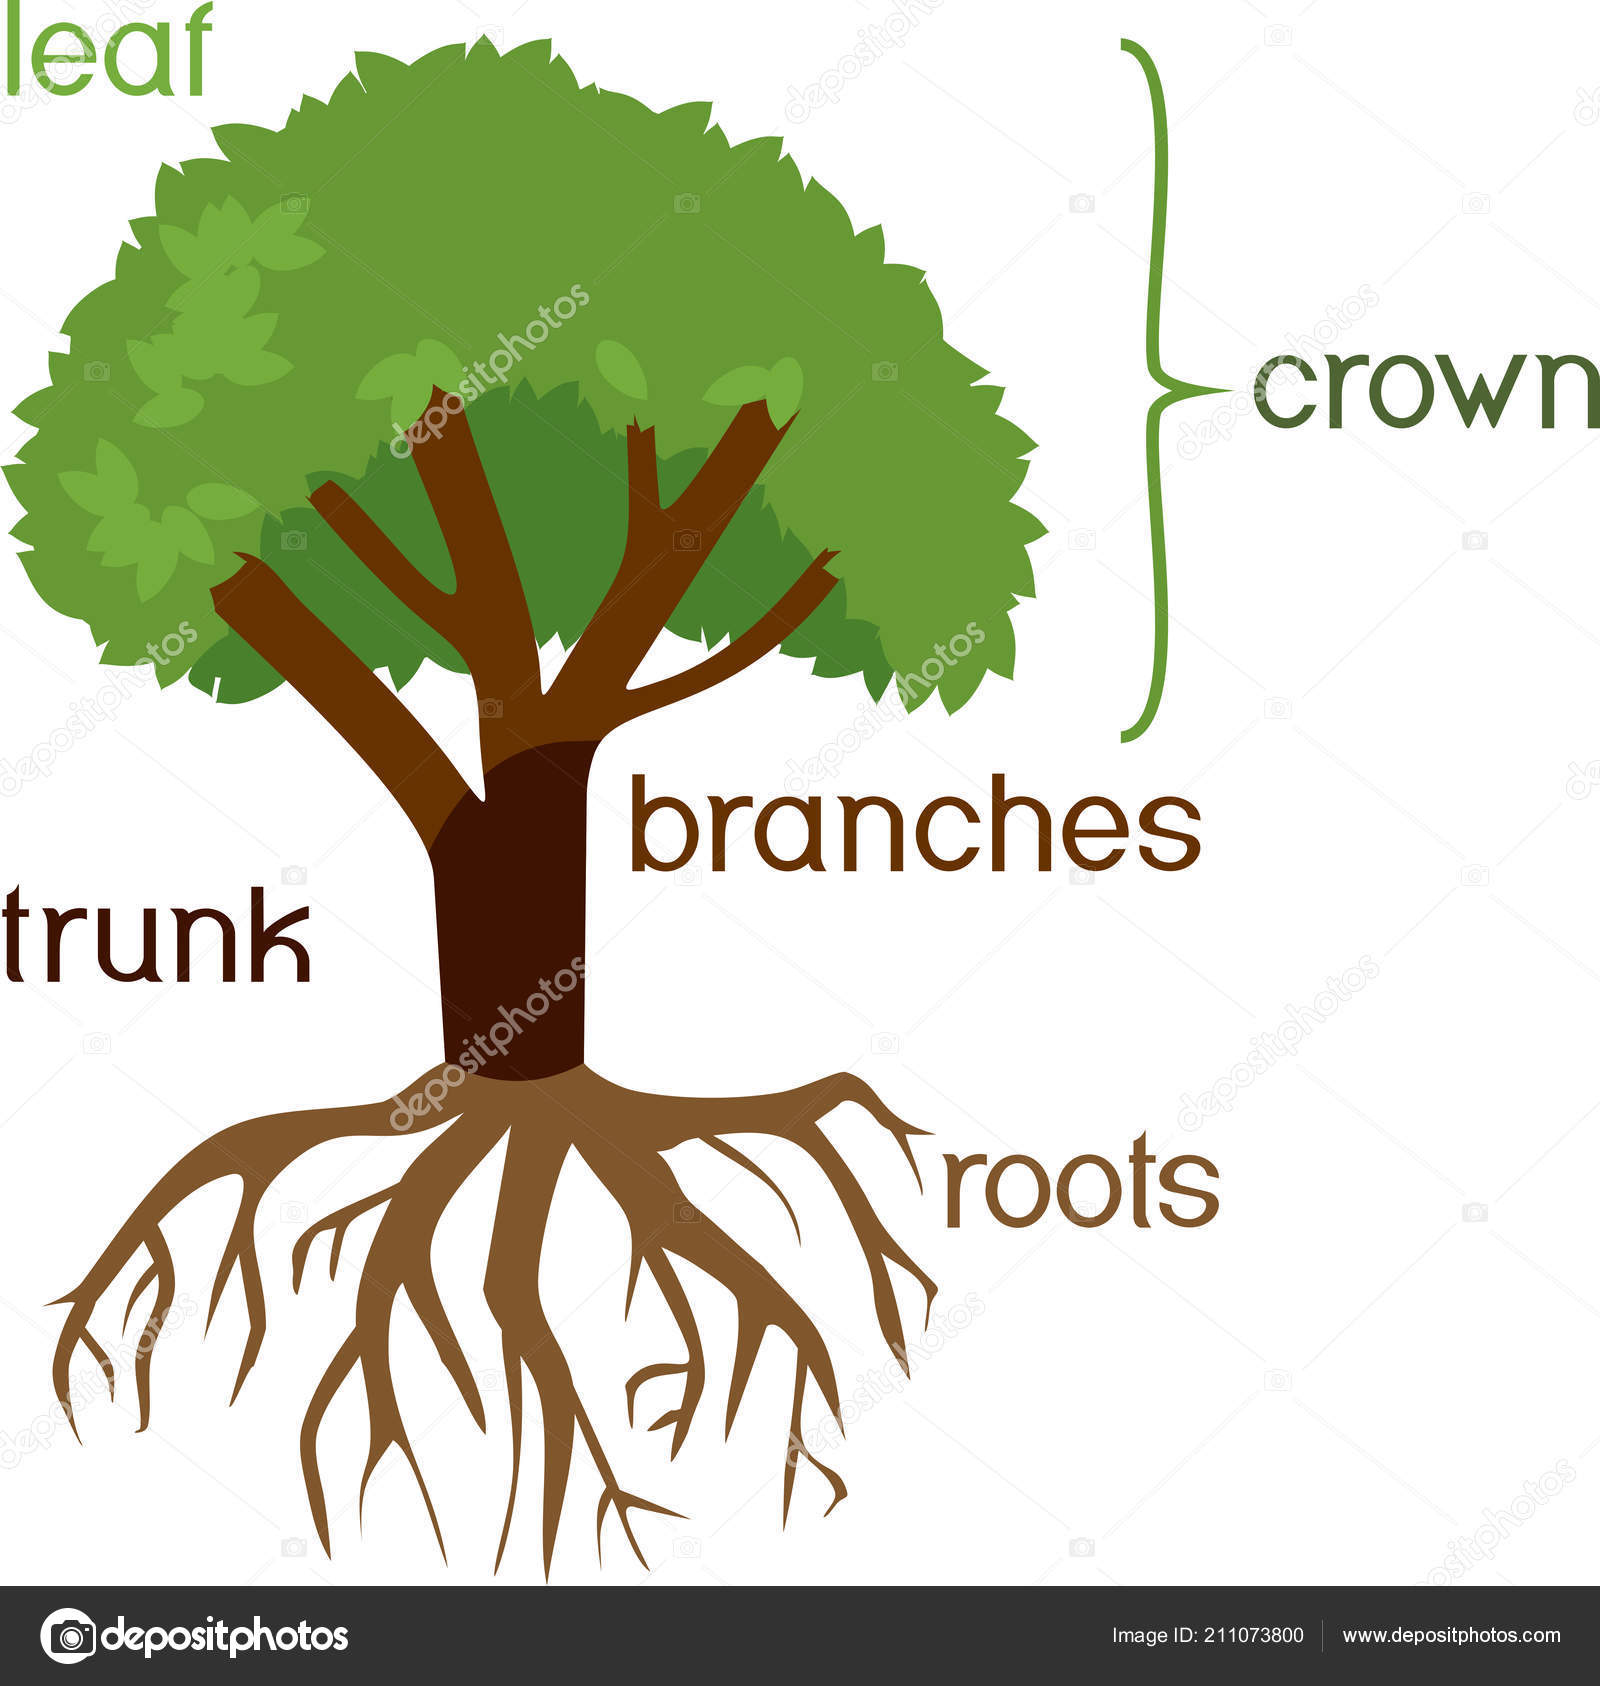 Parts Plant Morphology Tree Green Crown Root System Titles